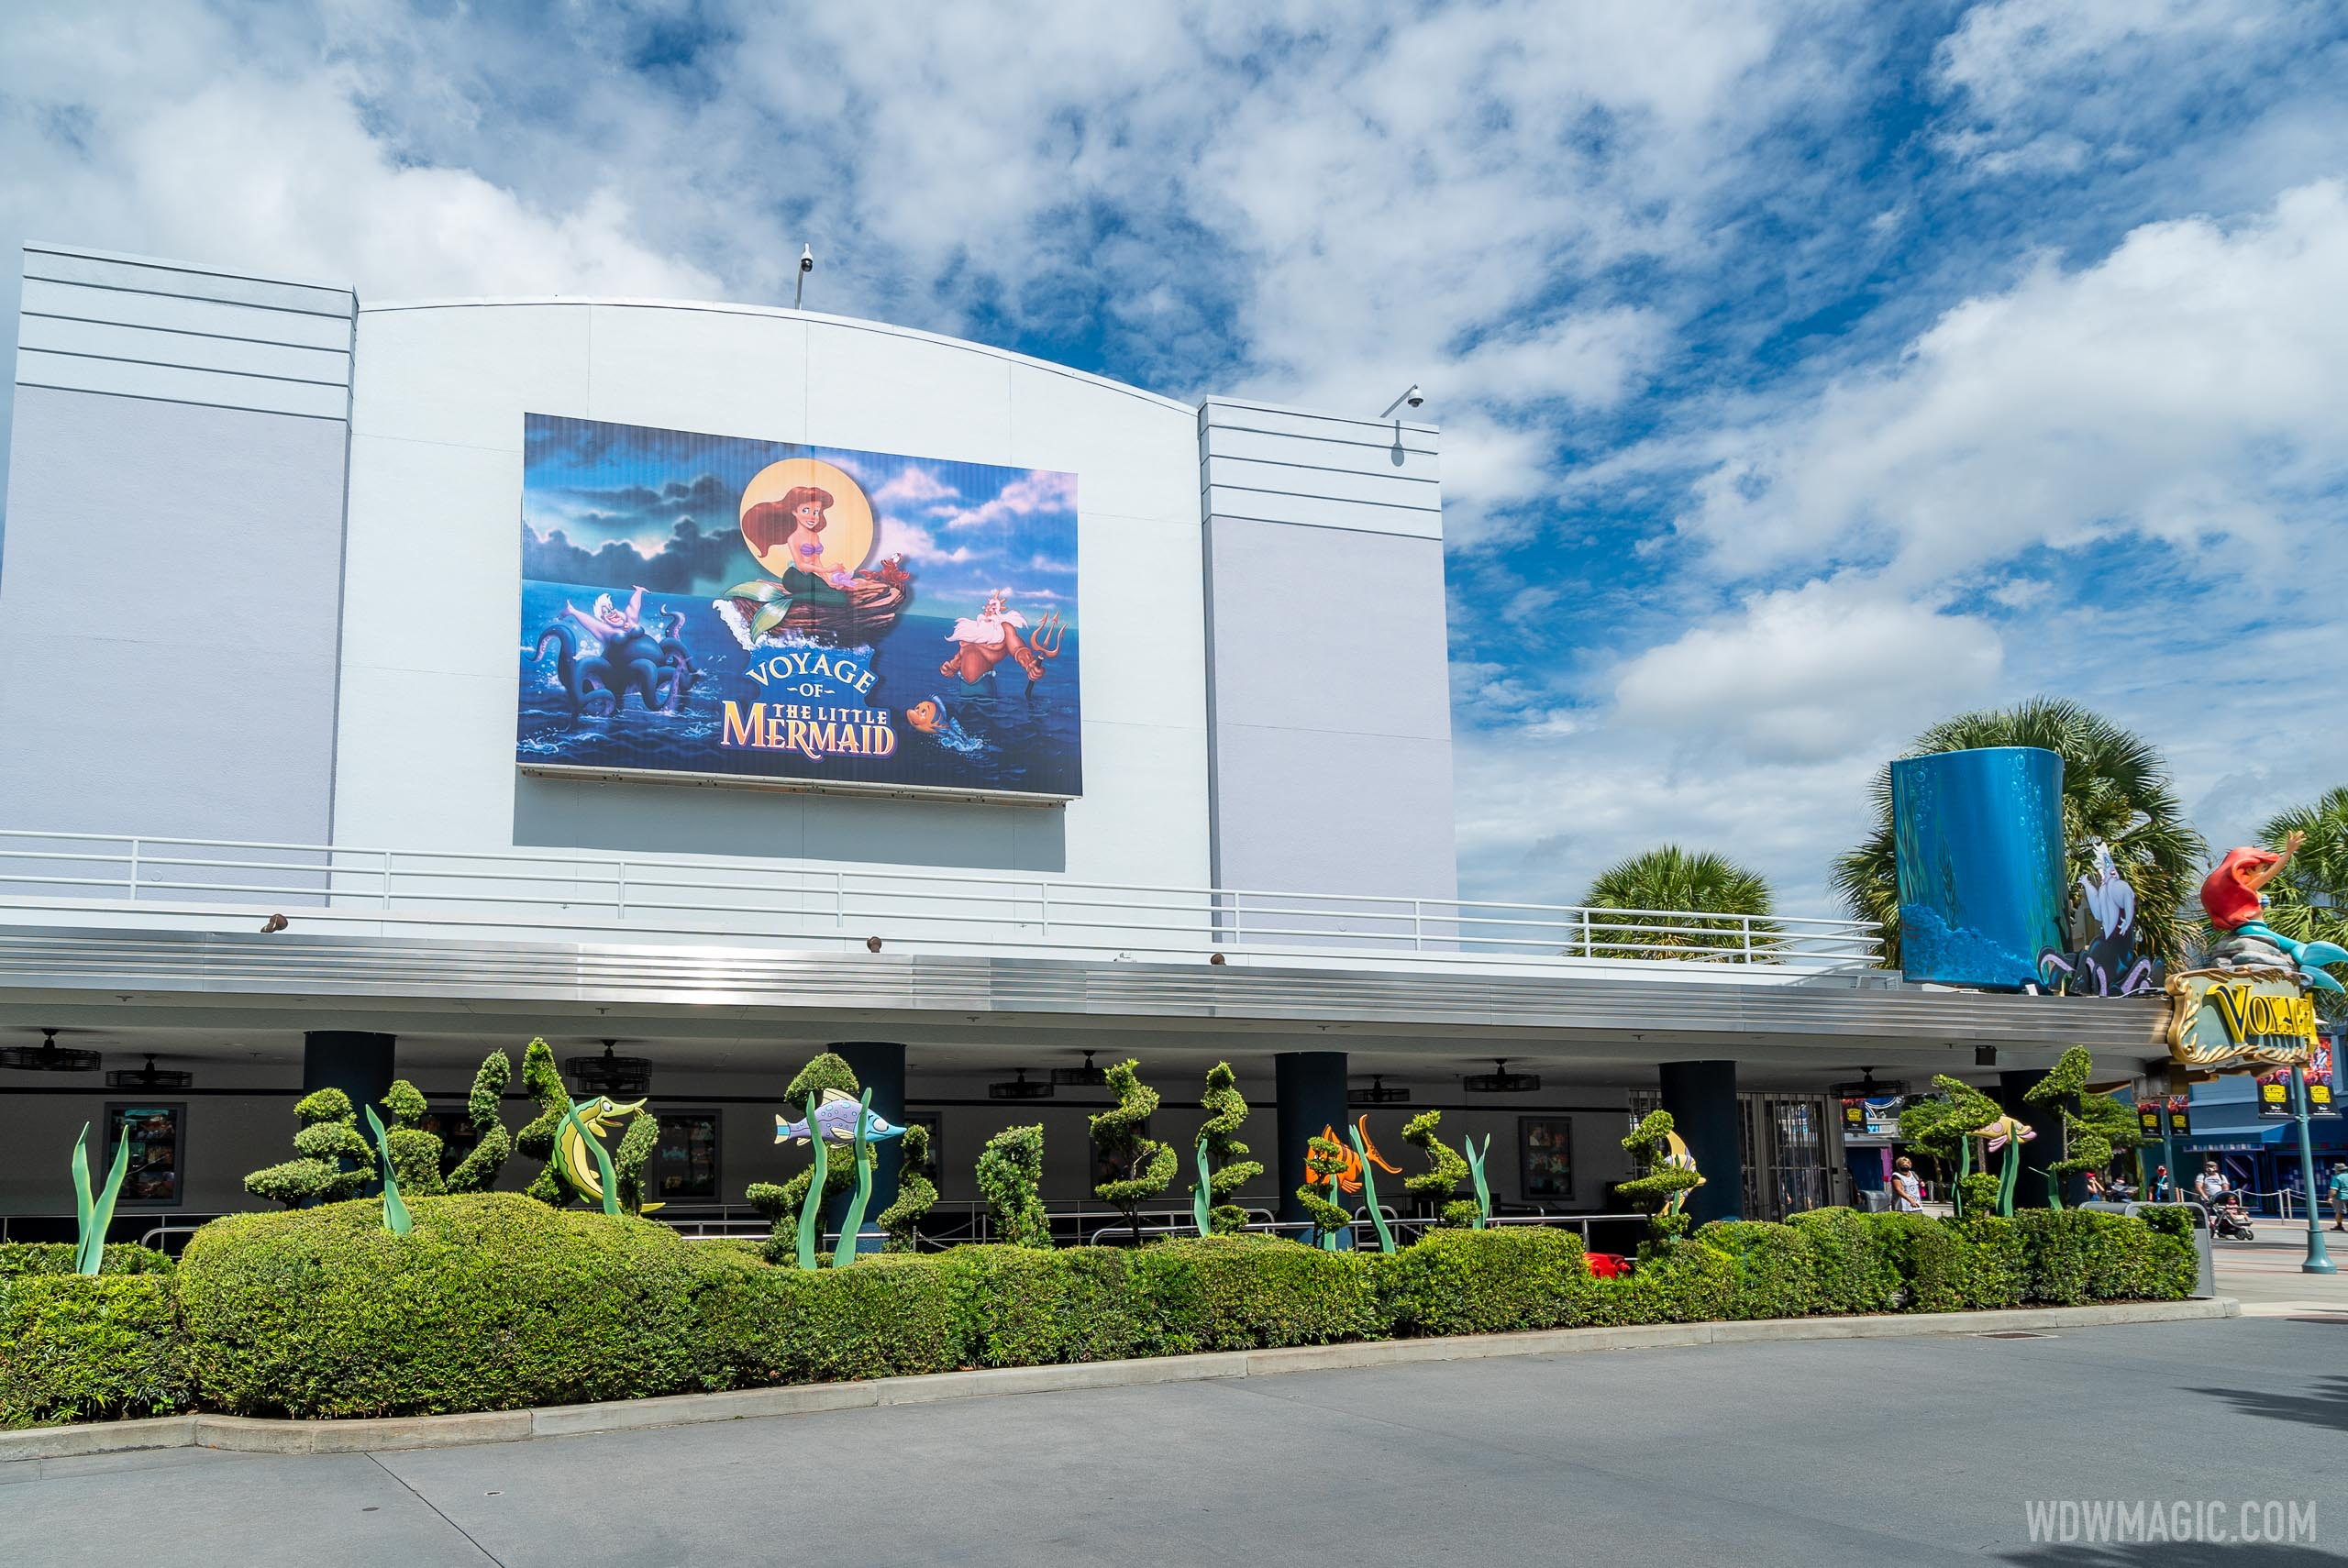 Voyage of the Little Mermaid overview